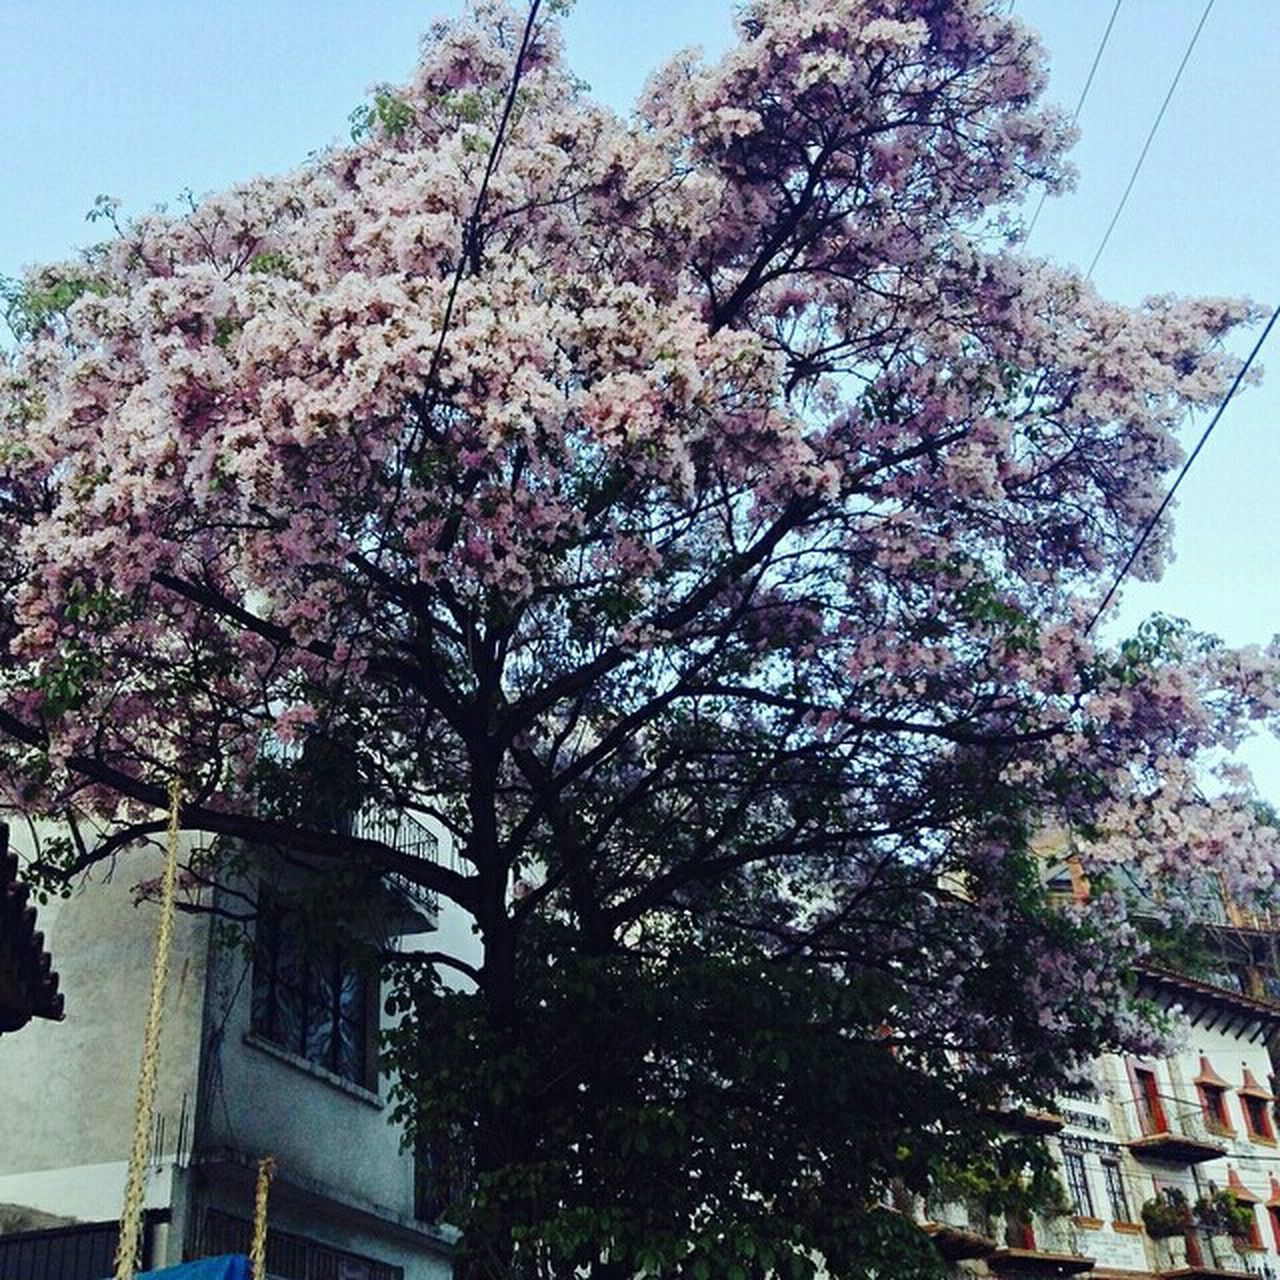 tree, growth, flower, low angle view, blossom, no people, day, sky, nature, branch, beauty in nature, outdoors, fragility, architecture, built structure, springtime, building exterior, freshness, clear sky, close-up